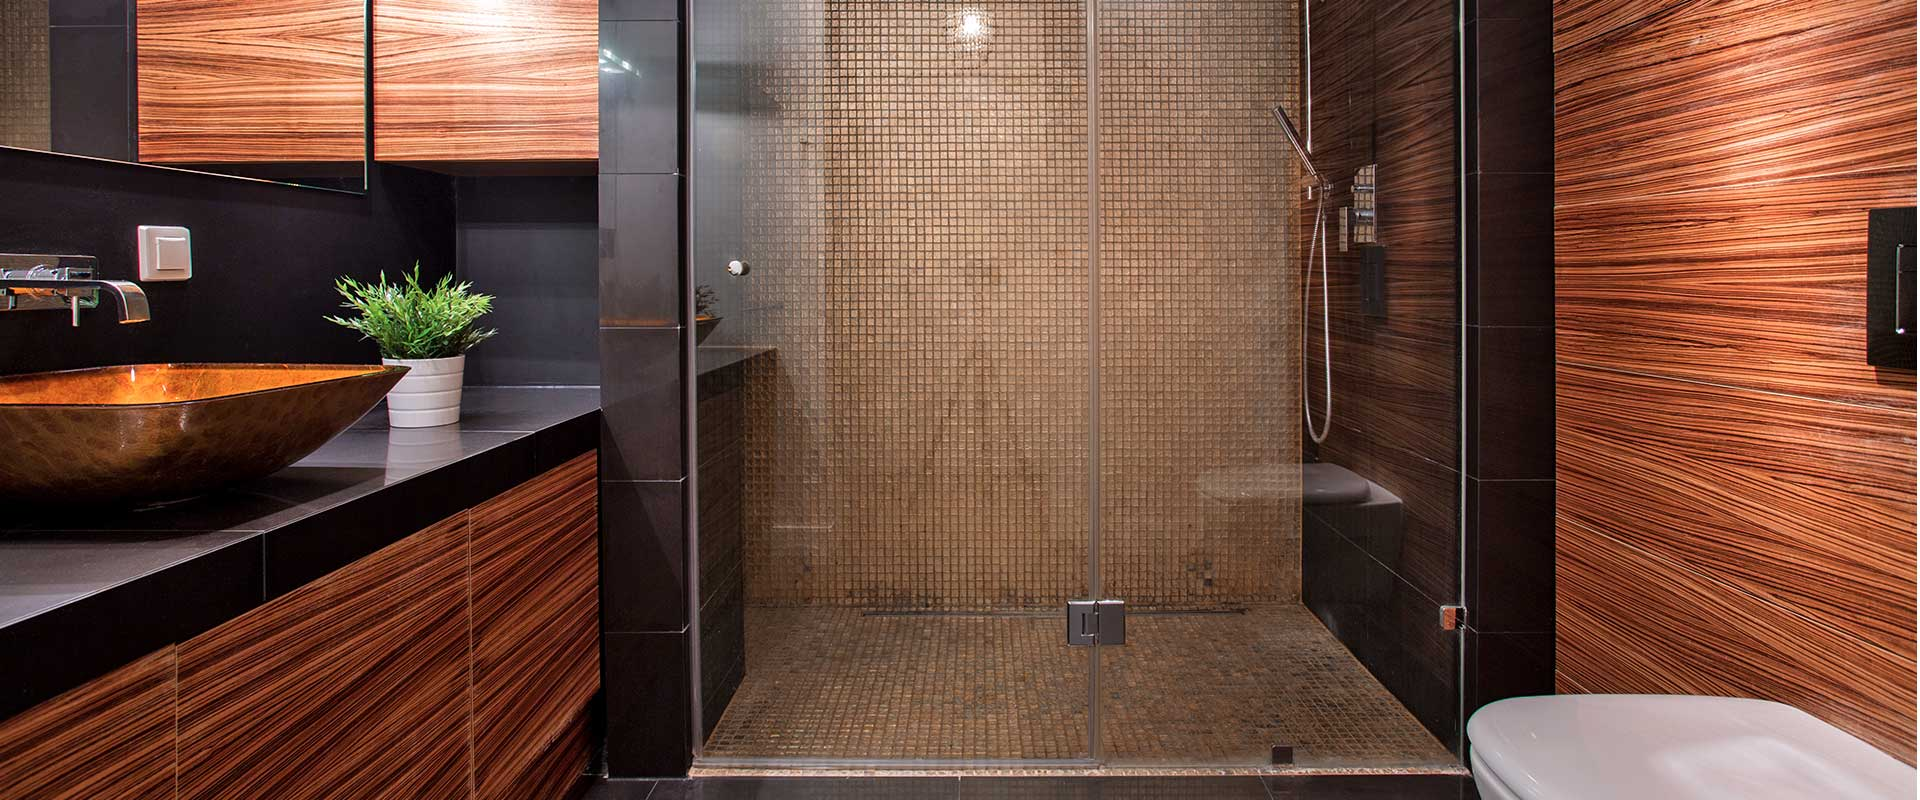 Modern bathroom with wood paneling and dark granite wall tiles and brown shower tiles